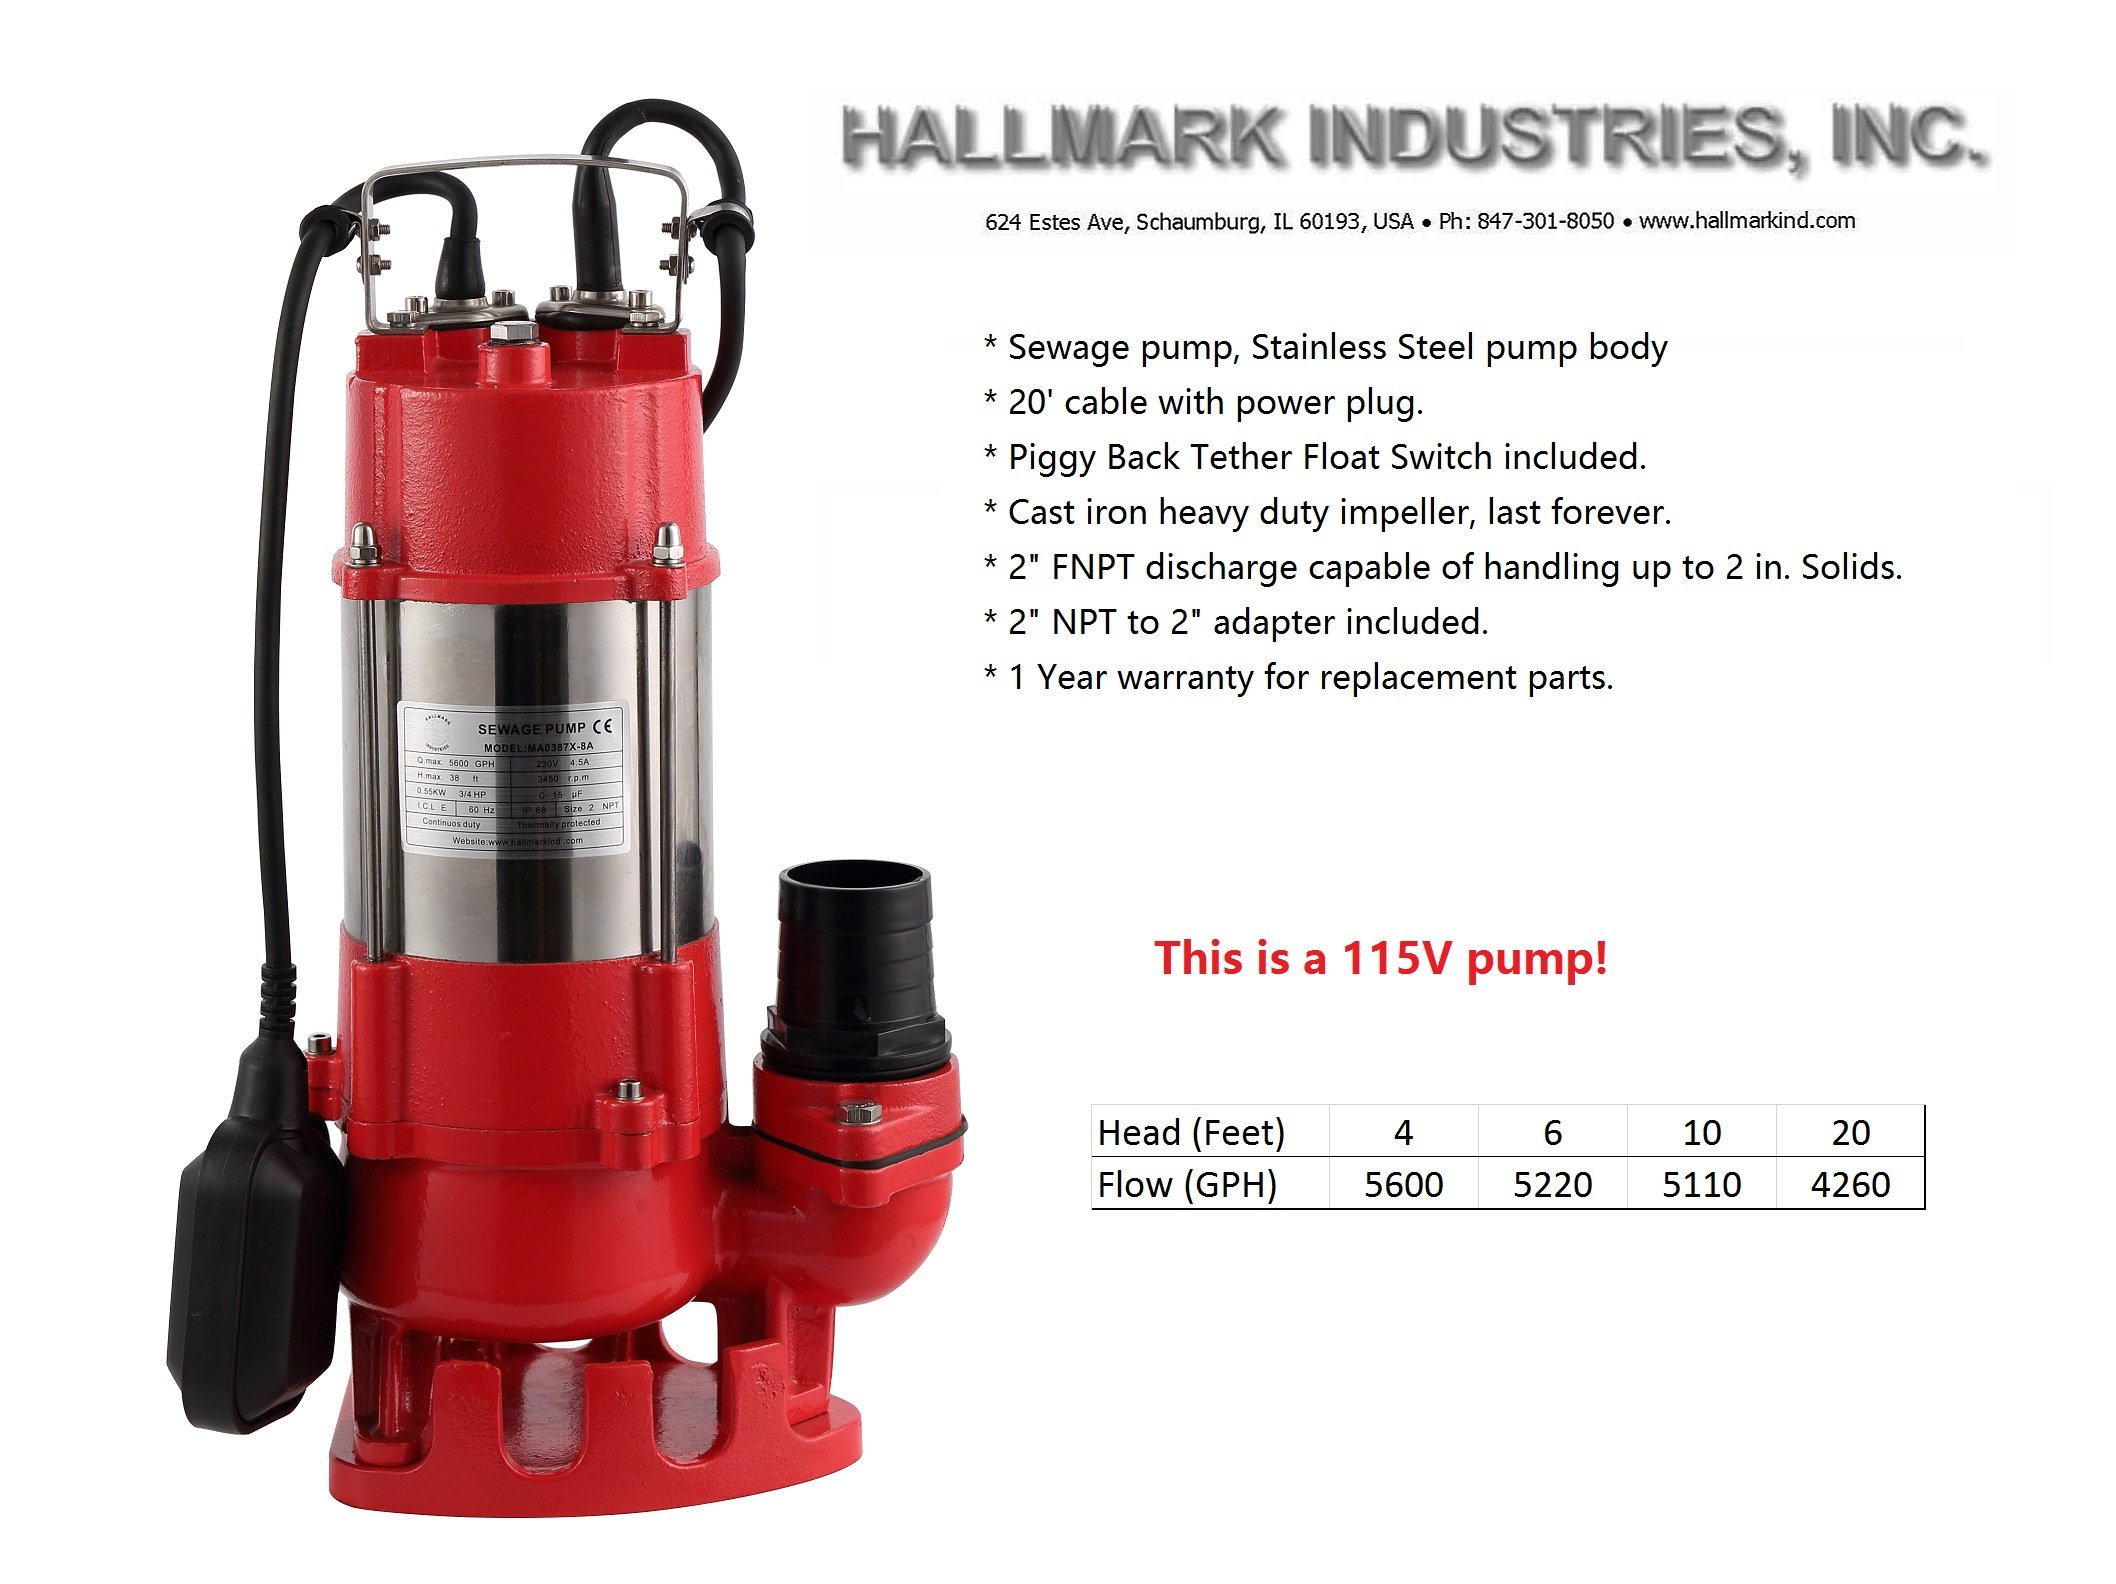 Hallmark Industries MA0387X-8 Sewage Pump with Float Switch, 5600 gpm, Stainless Steel, Heavy Duty, 3/4 hp, 115V, 38' Lift, 20' Cable by Hallmark Industries (Image #3)